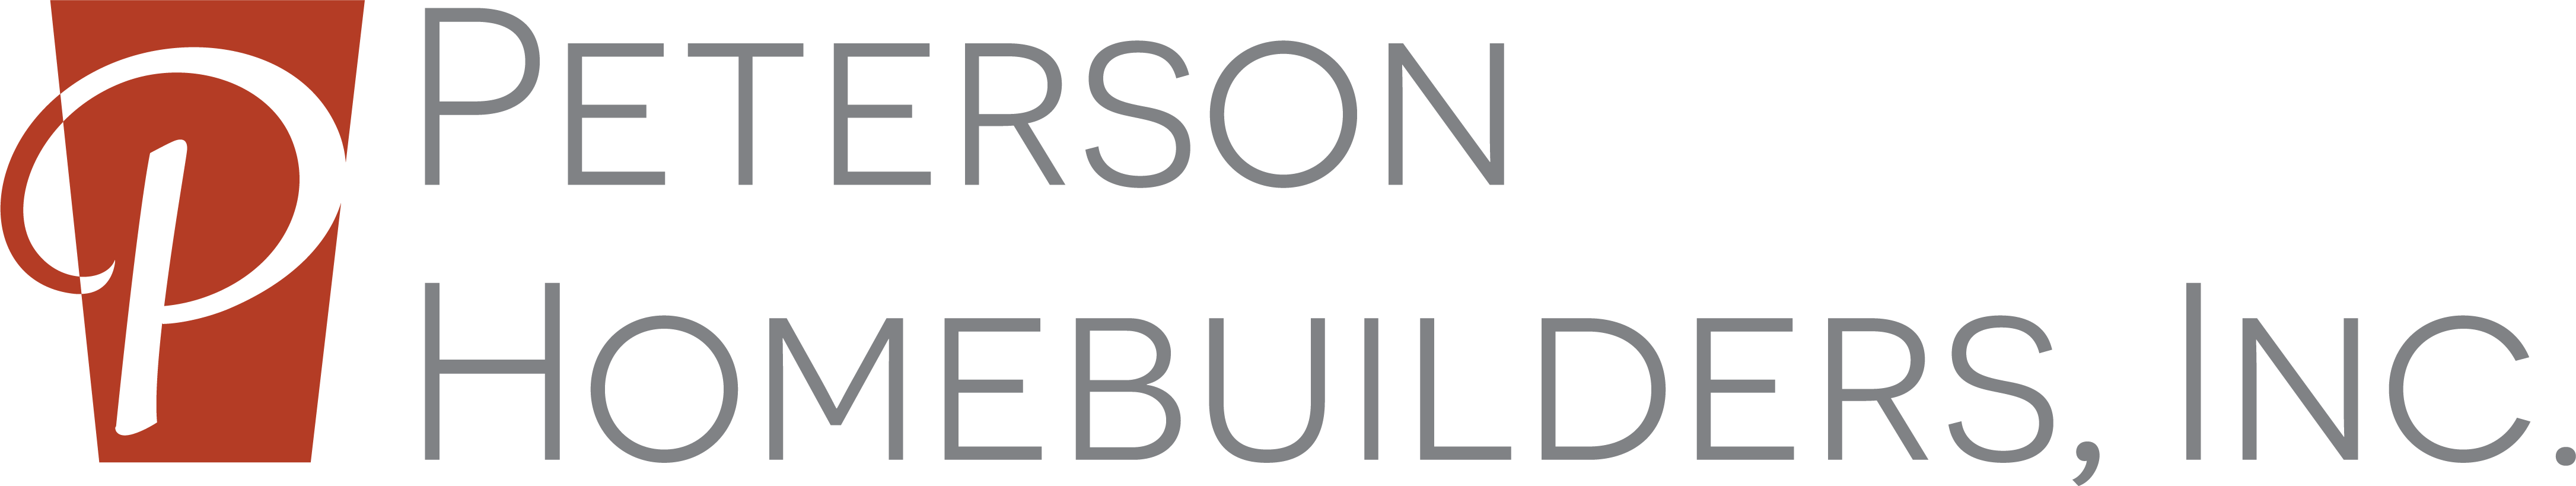 Peterson Homebuilders